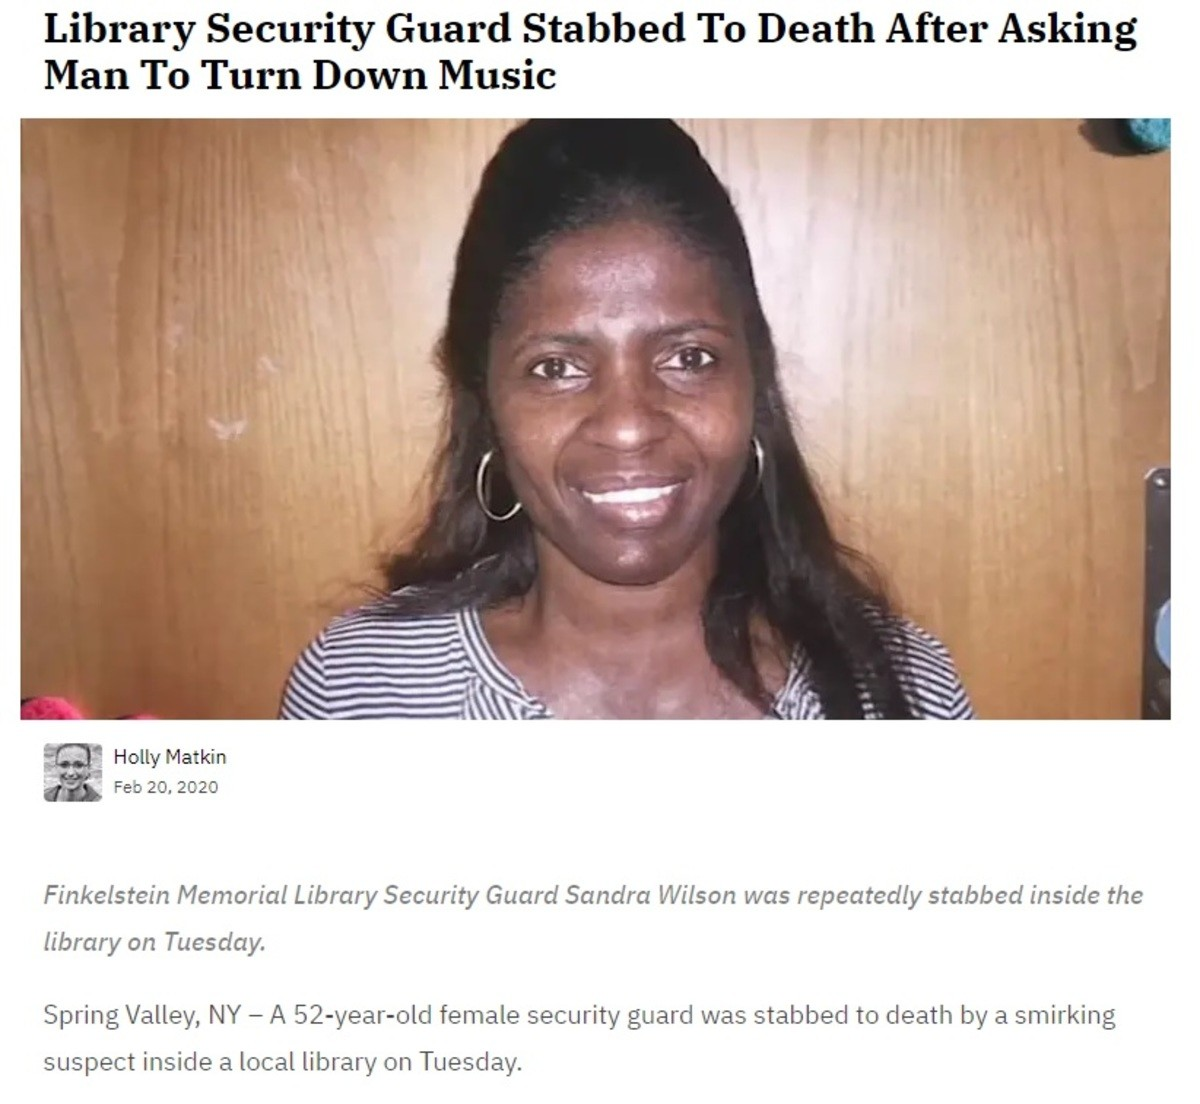 EOW for Library Security. n5YstpNy4BcK4PbnD5HhoT3jHwIJqr0BcAEfIBts8MA Looks like I got out just in time. I've had several close calls in my 7 years. I worked at